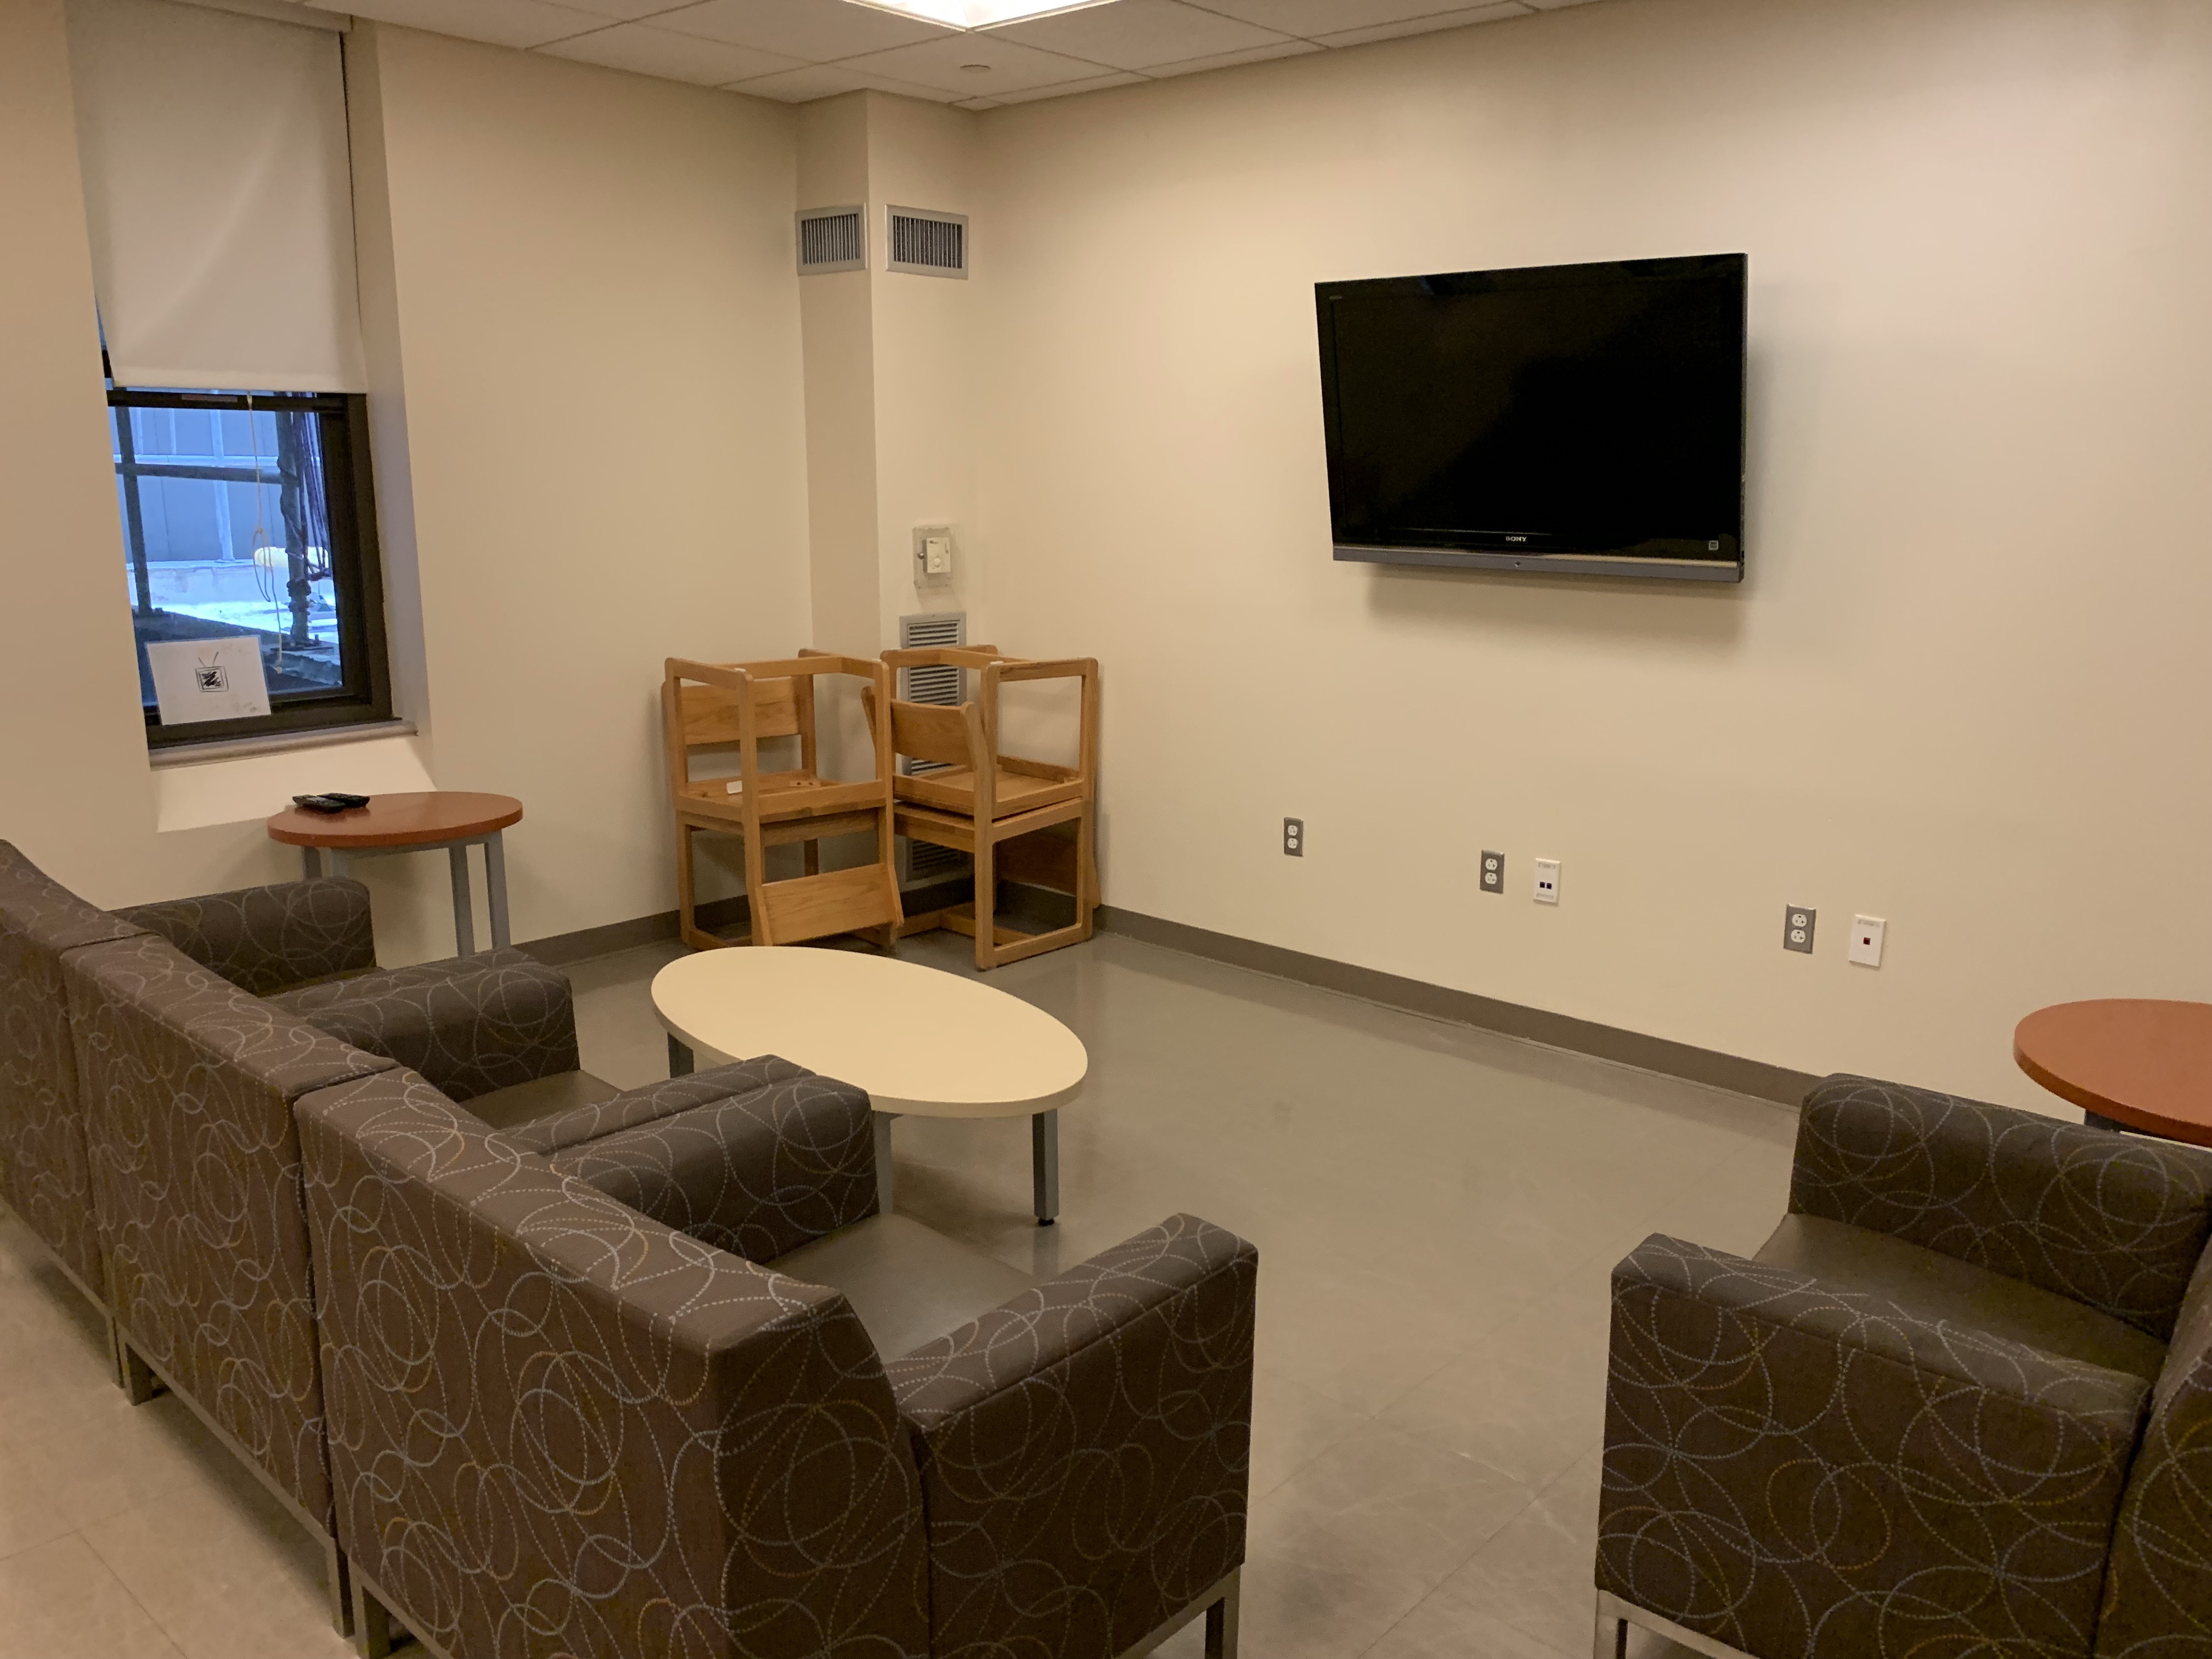 small lounge with 4 arm chairs, table, and wall-mounted TV